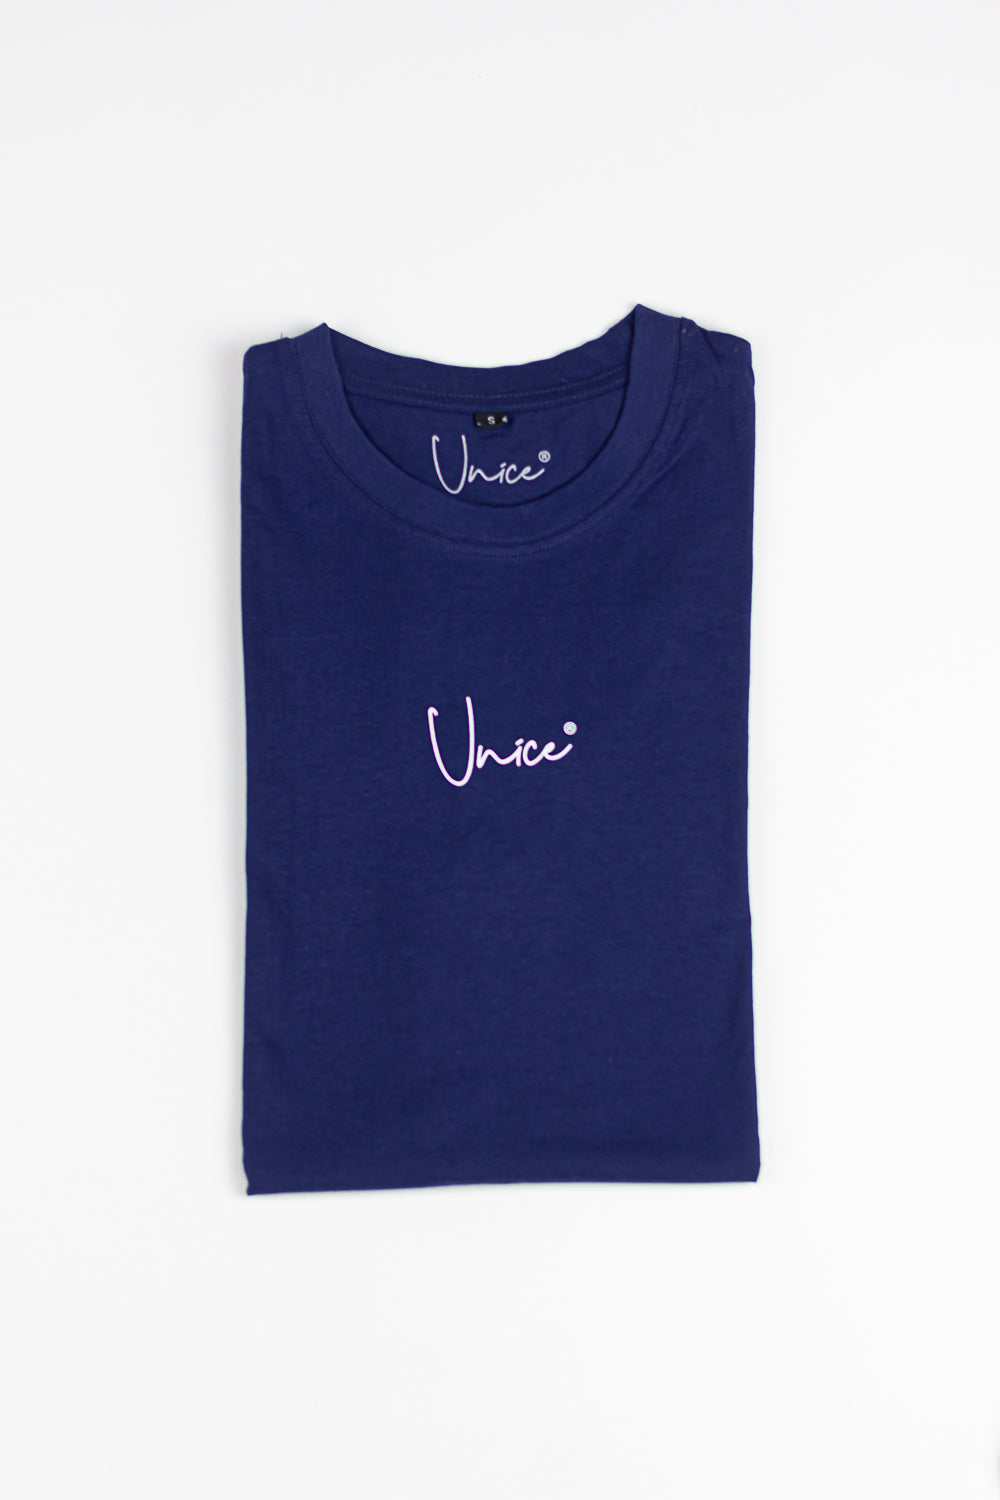 2. Unice T-shirt Blue